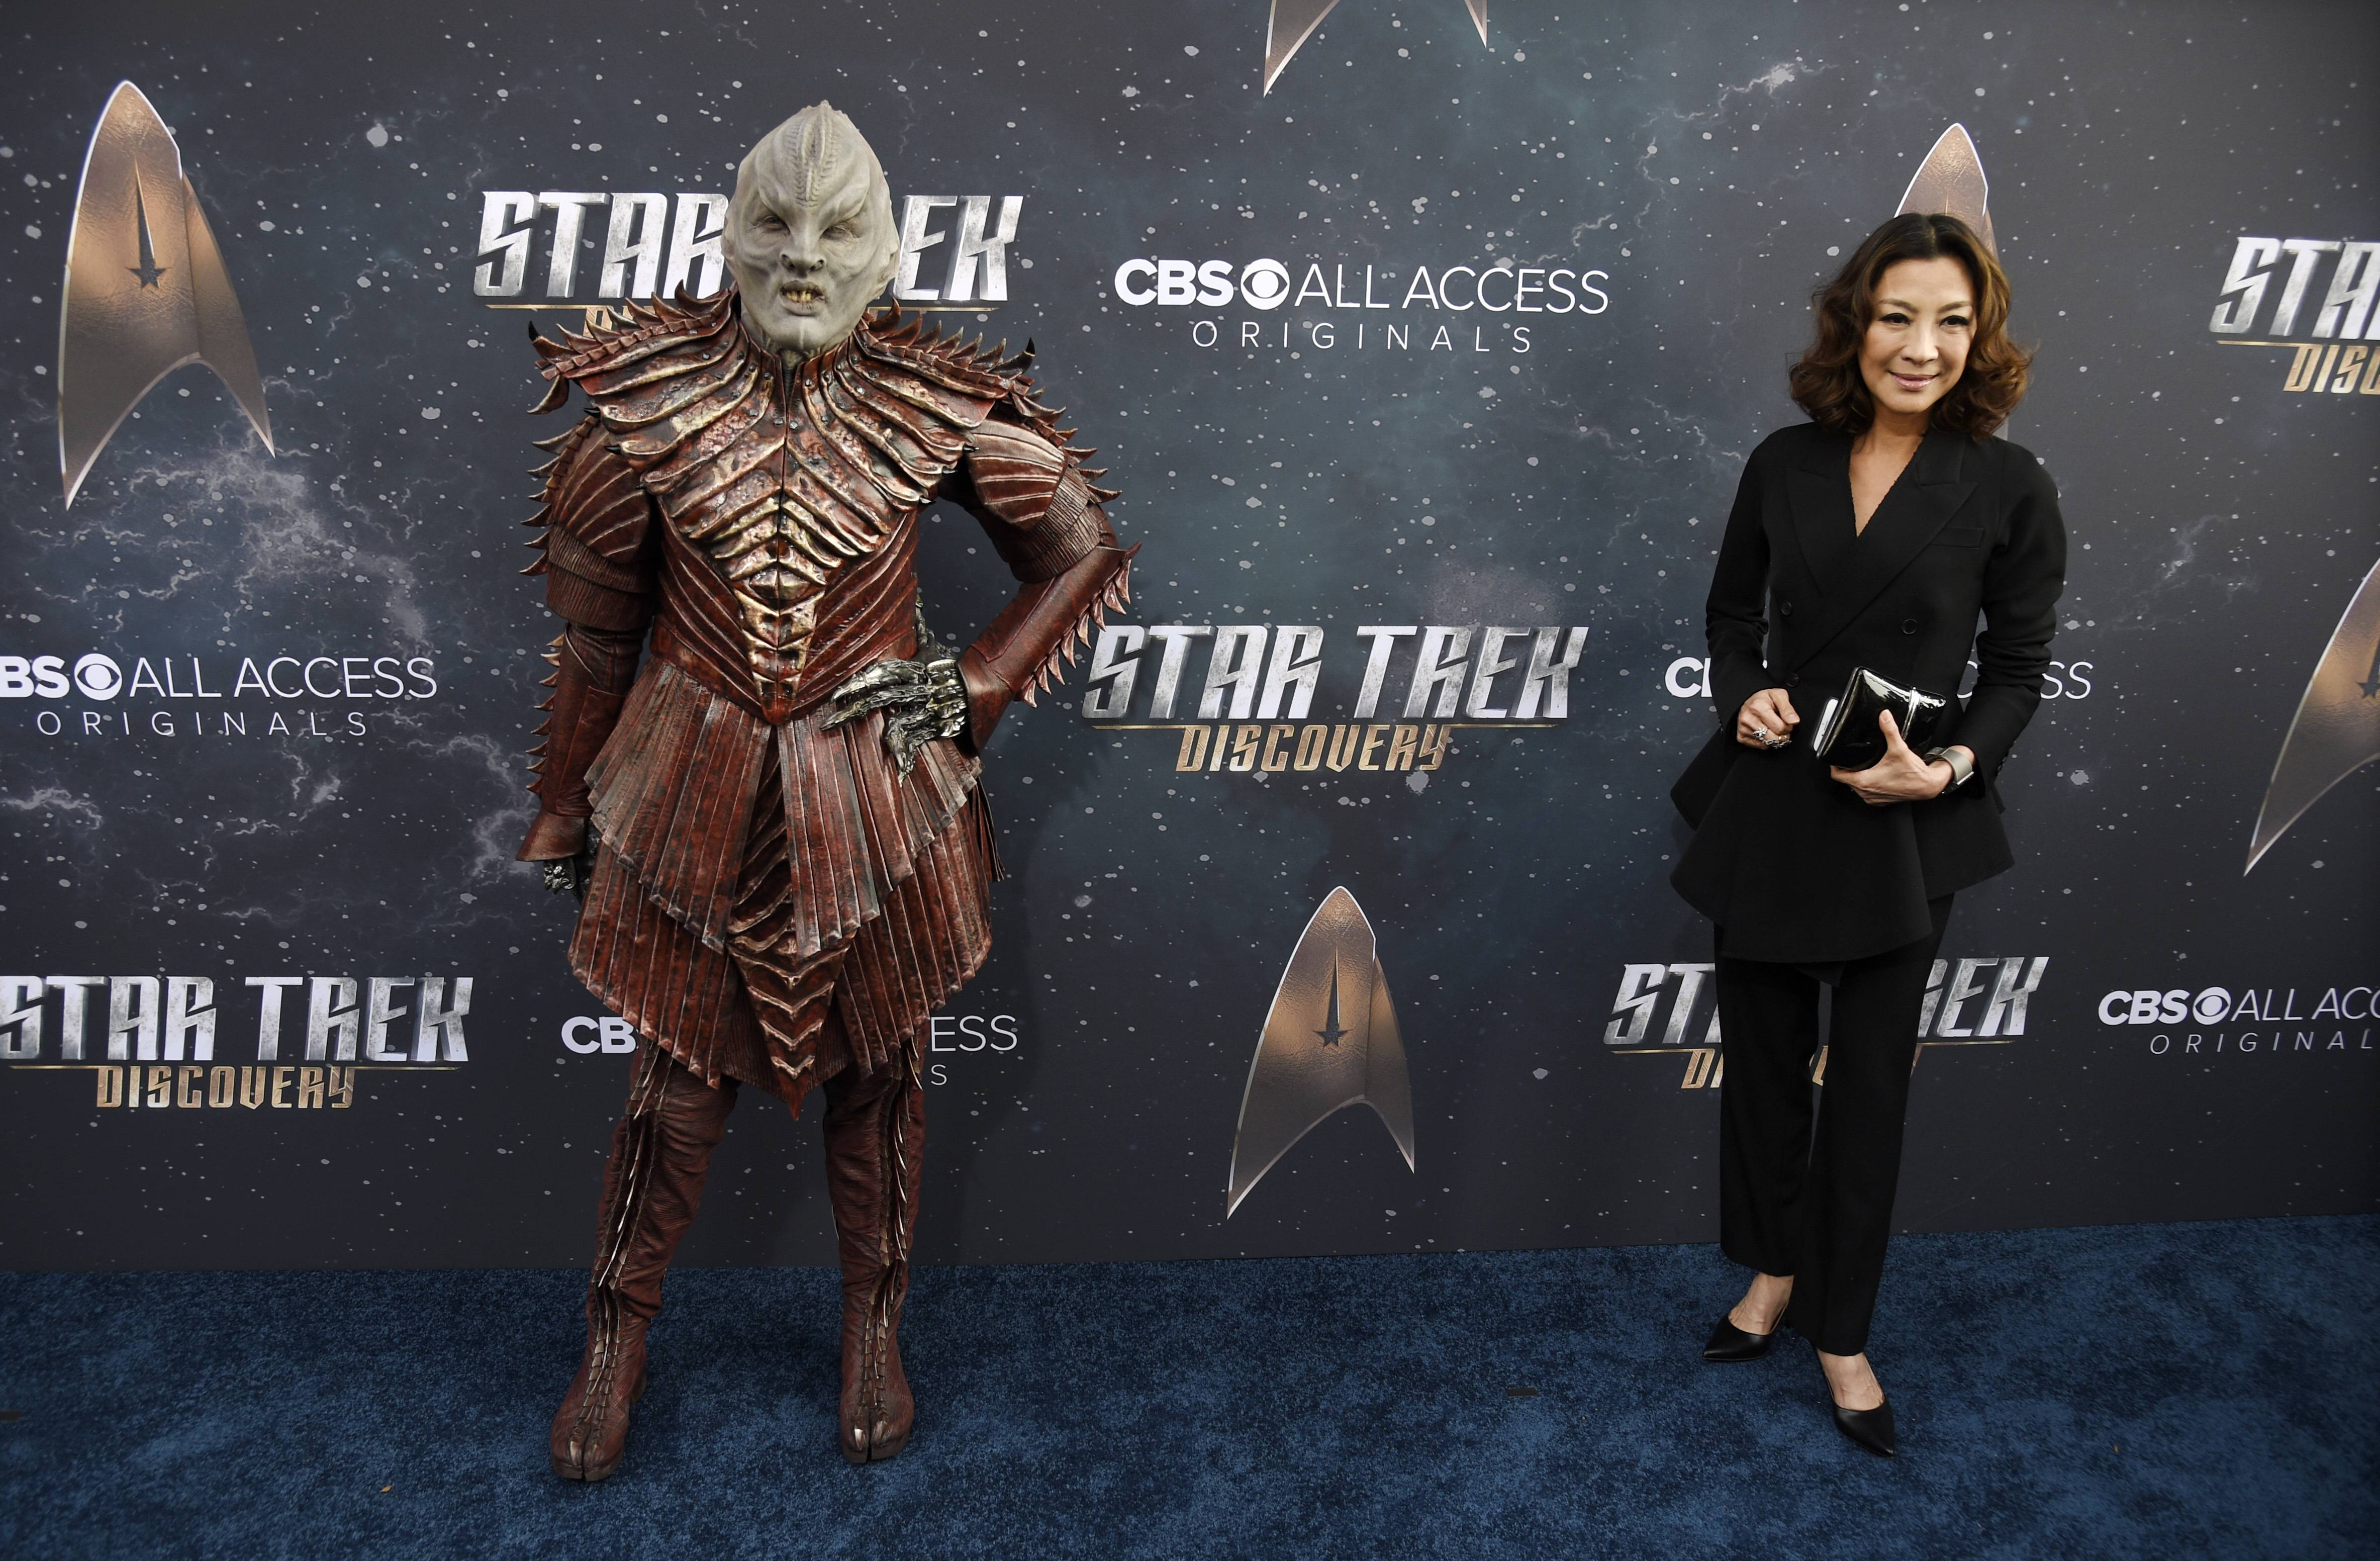 """Star Trek: Discovery"" guest star Michelle Yeoh, right, poses alongside a radically redesigned Klingon character from the show at last week's premiere of the new CBS All Access series in Los Angeles."